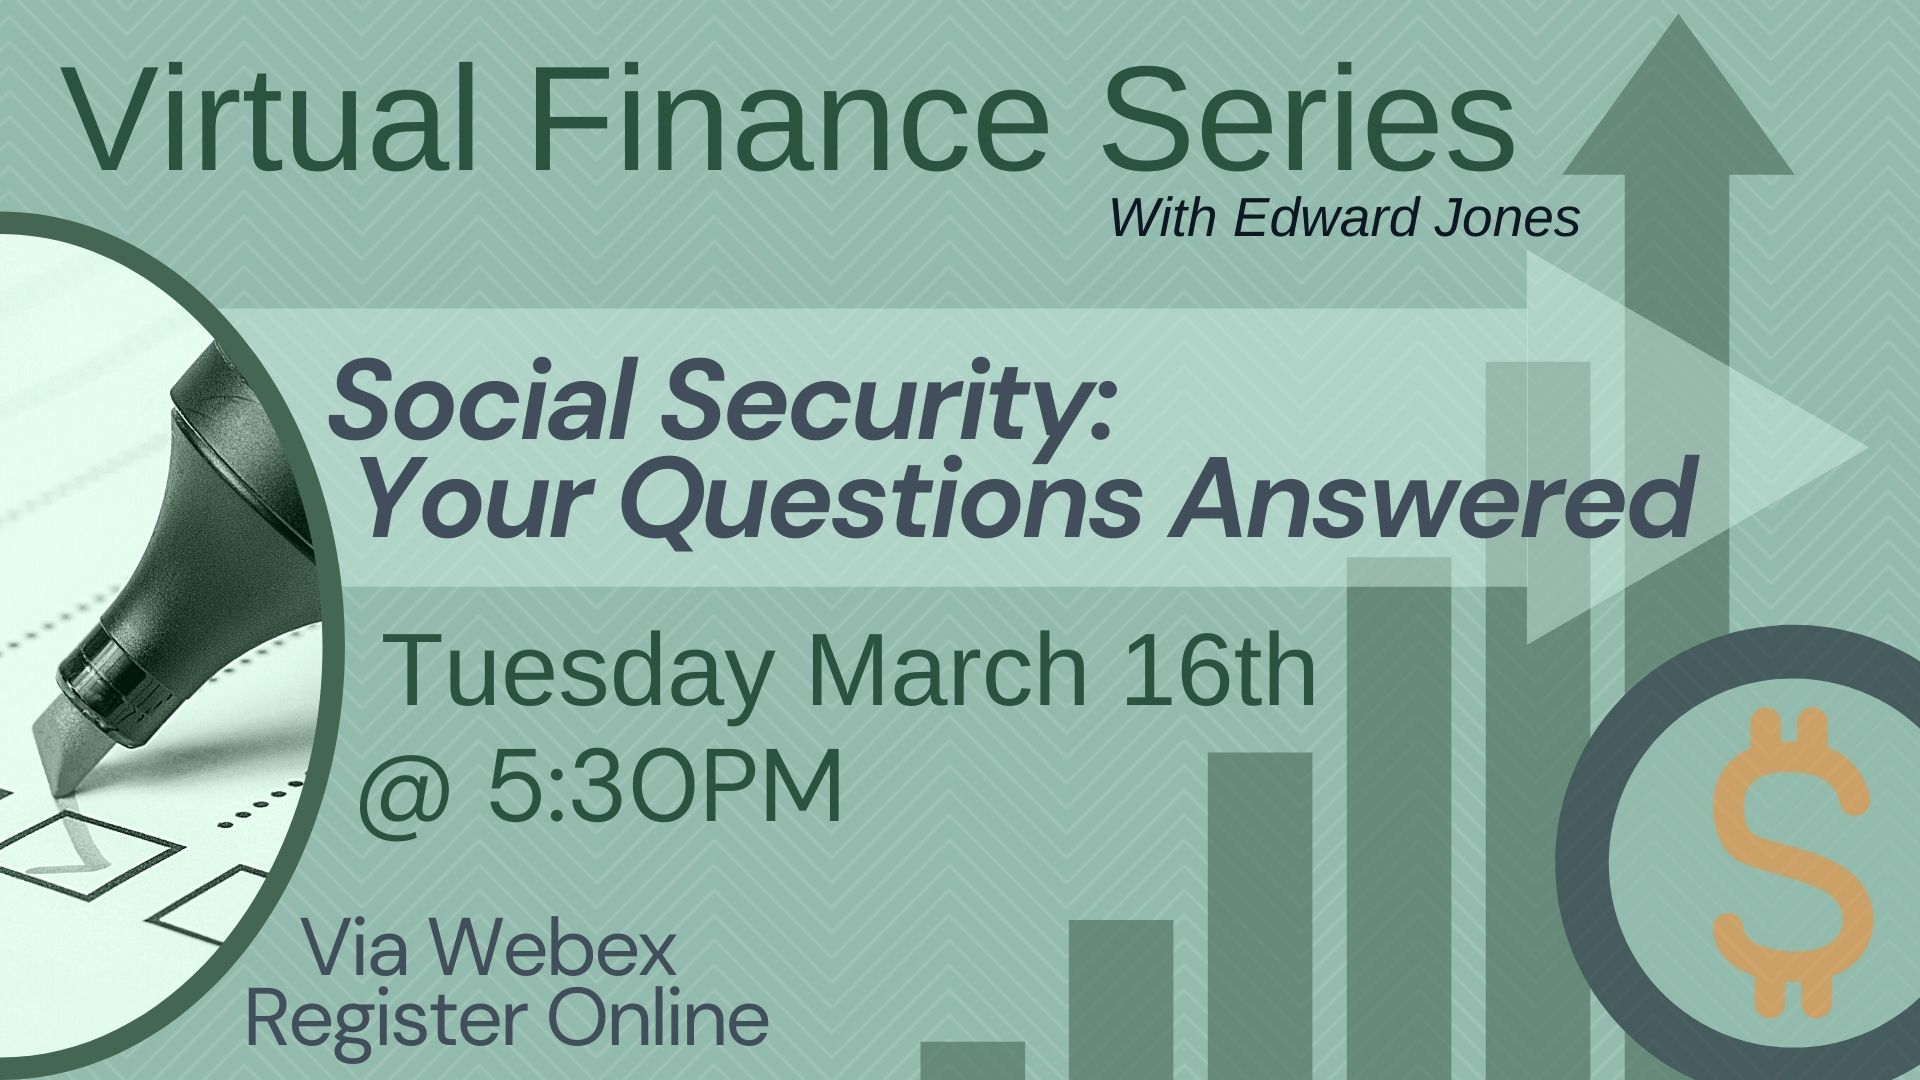 Virtual Finance Series: Social Security - Your Questions Answered